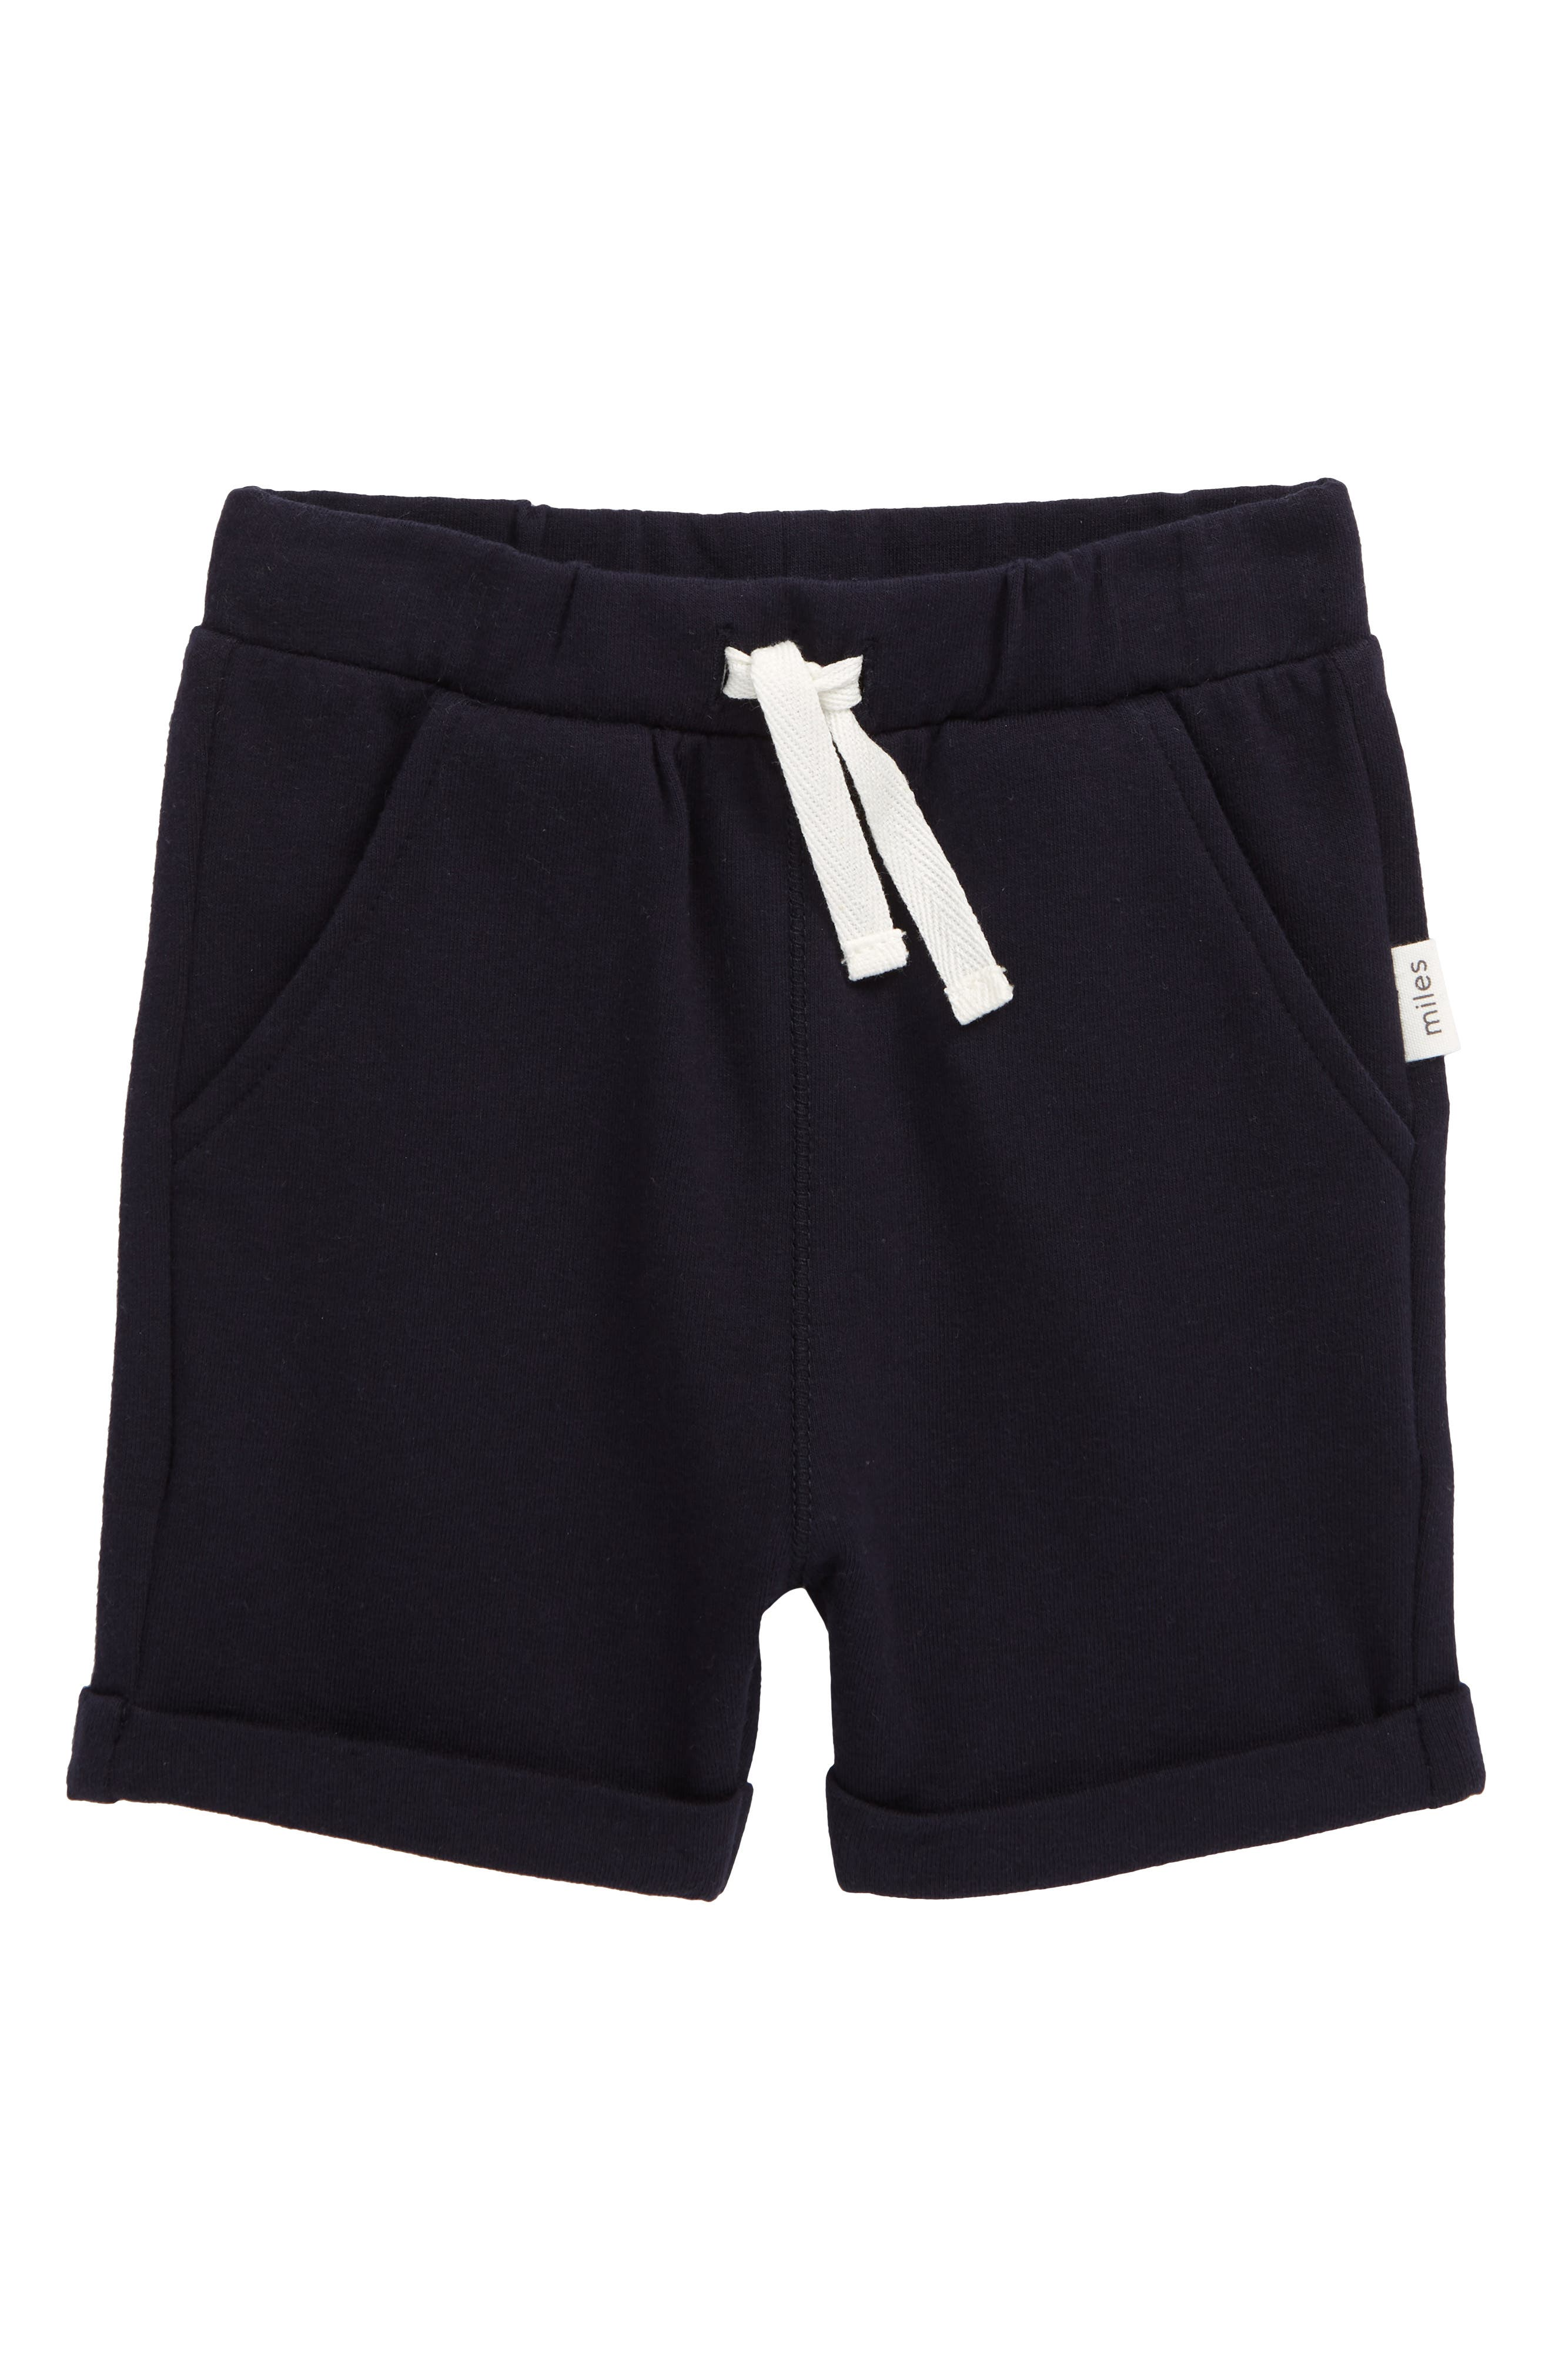 A stretchy waistband helps keep your little one comfortable in easygoing stretch-cotton shorts. Style Name: Miles Baby Knit Shorts (Baby). Style Number: 6019916 1. Available in stores.